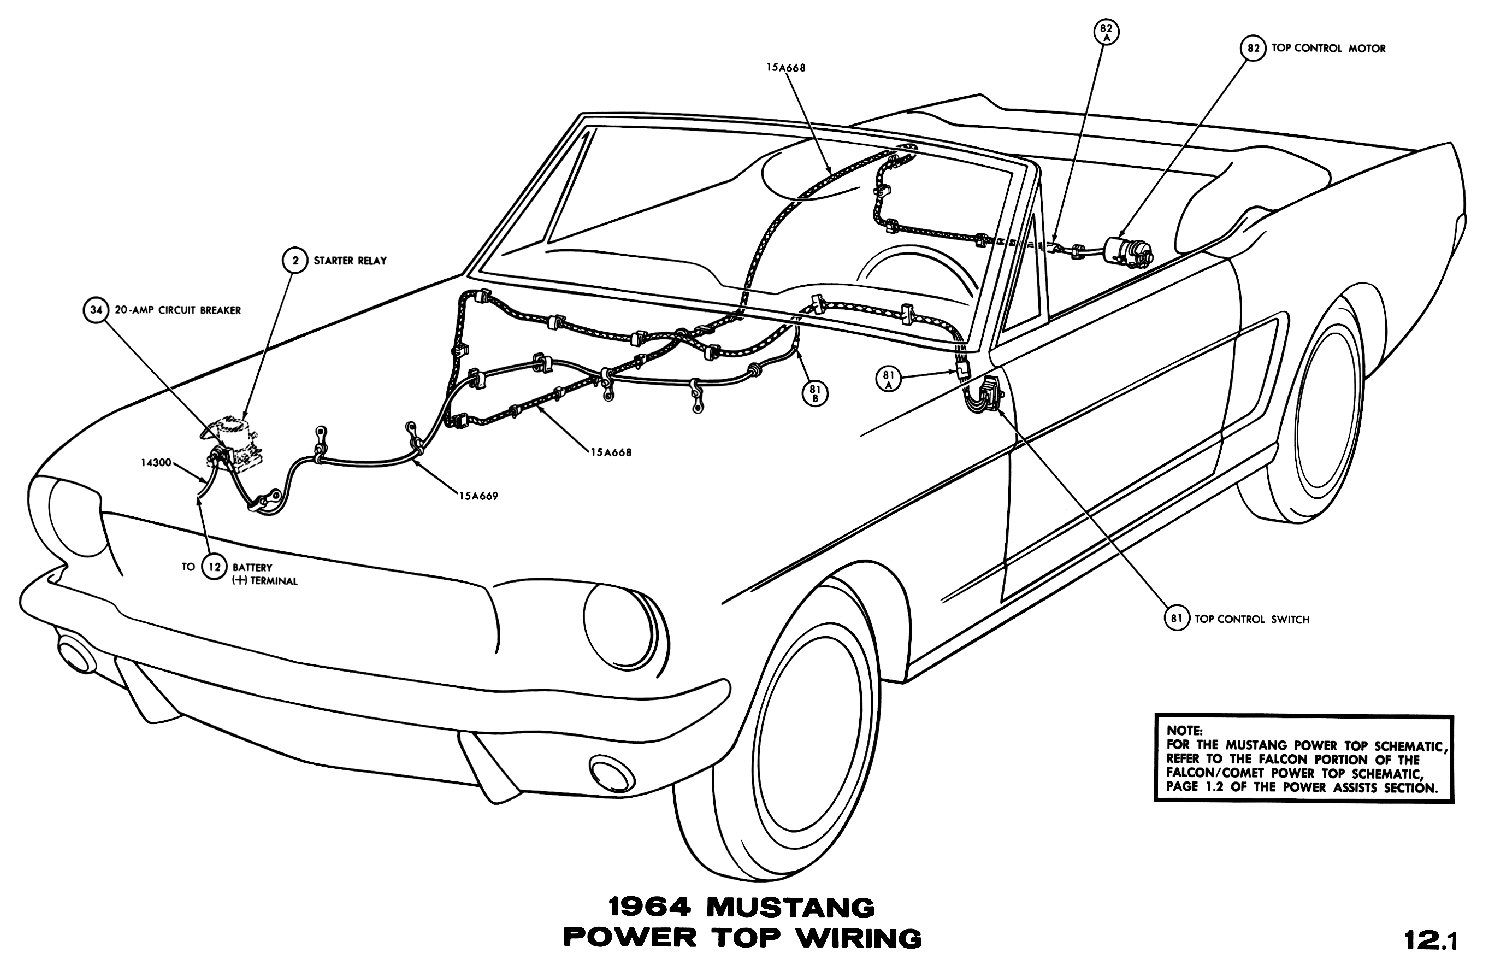 1964 Mustang Wiring Diagrams Average Joe Restoration Typical Hot Water Heater Diagram Power Top Pictorial Or Schematic